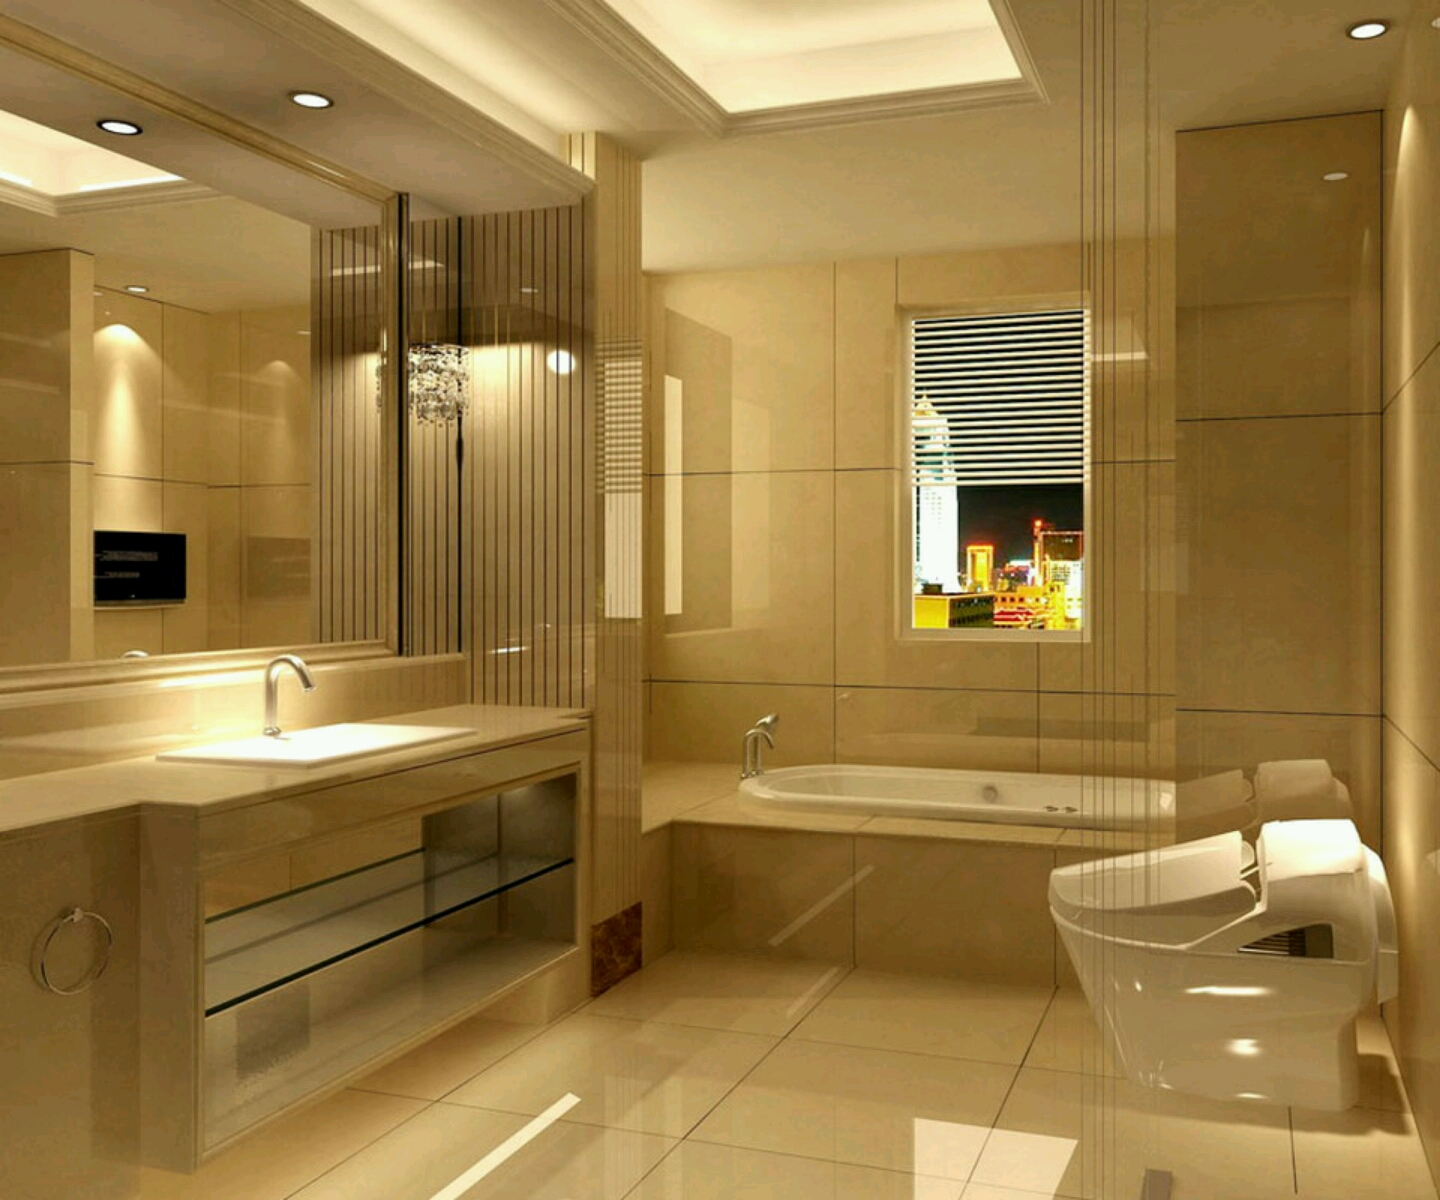 Modern bathrooms setting ideas furniture gallery for New bathroom ideas images